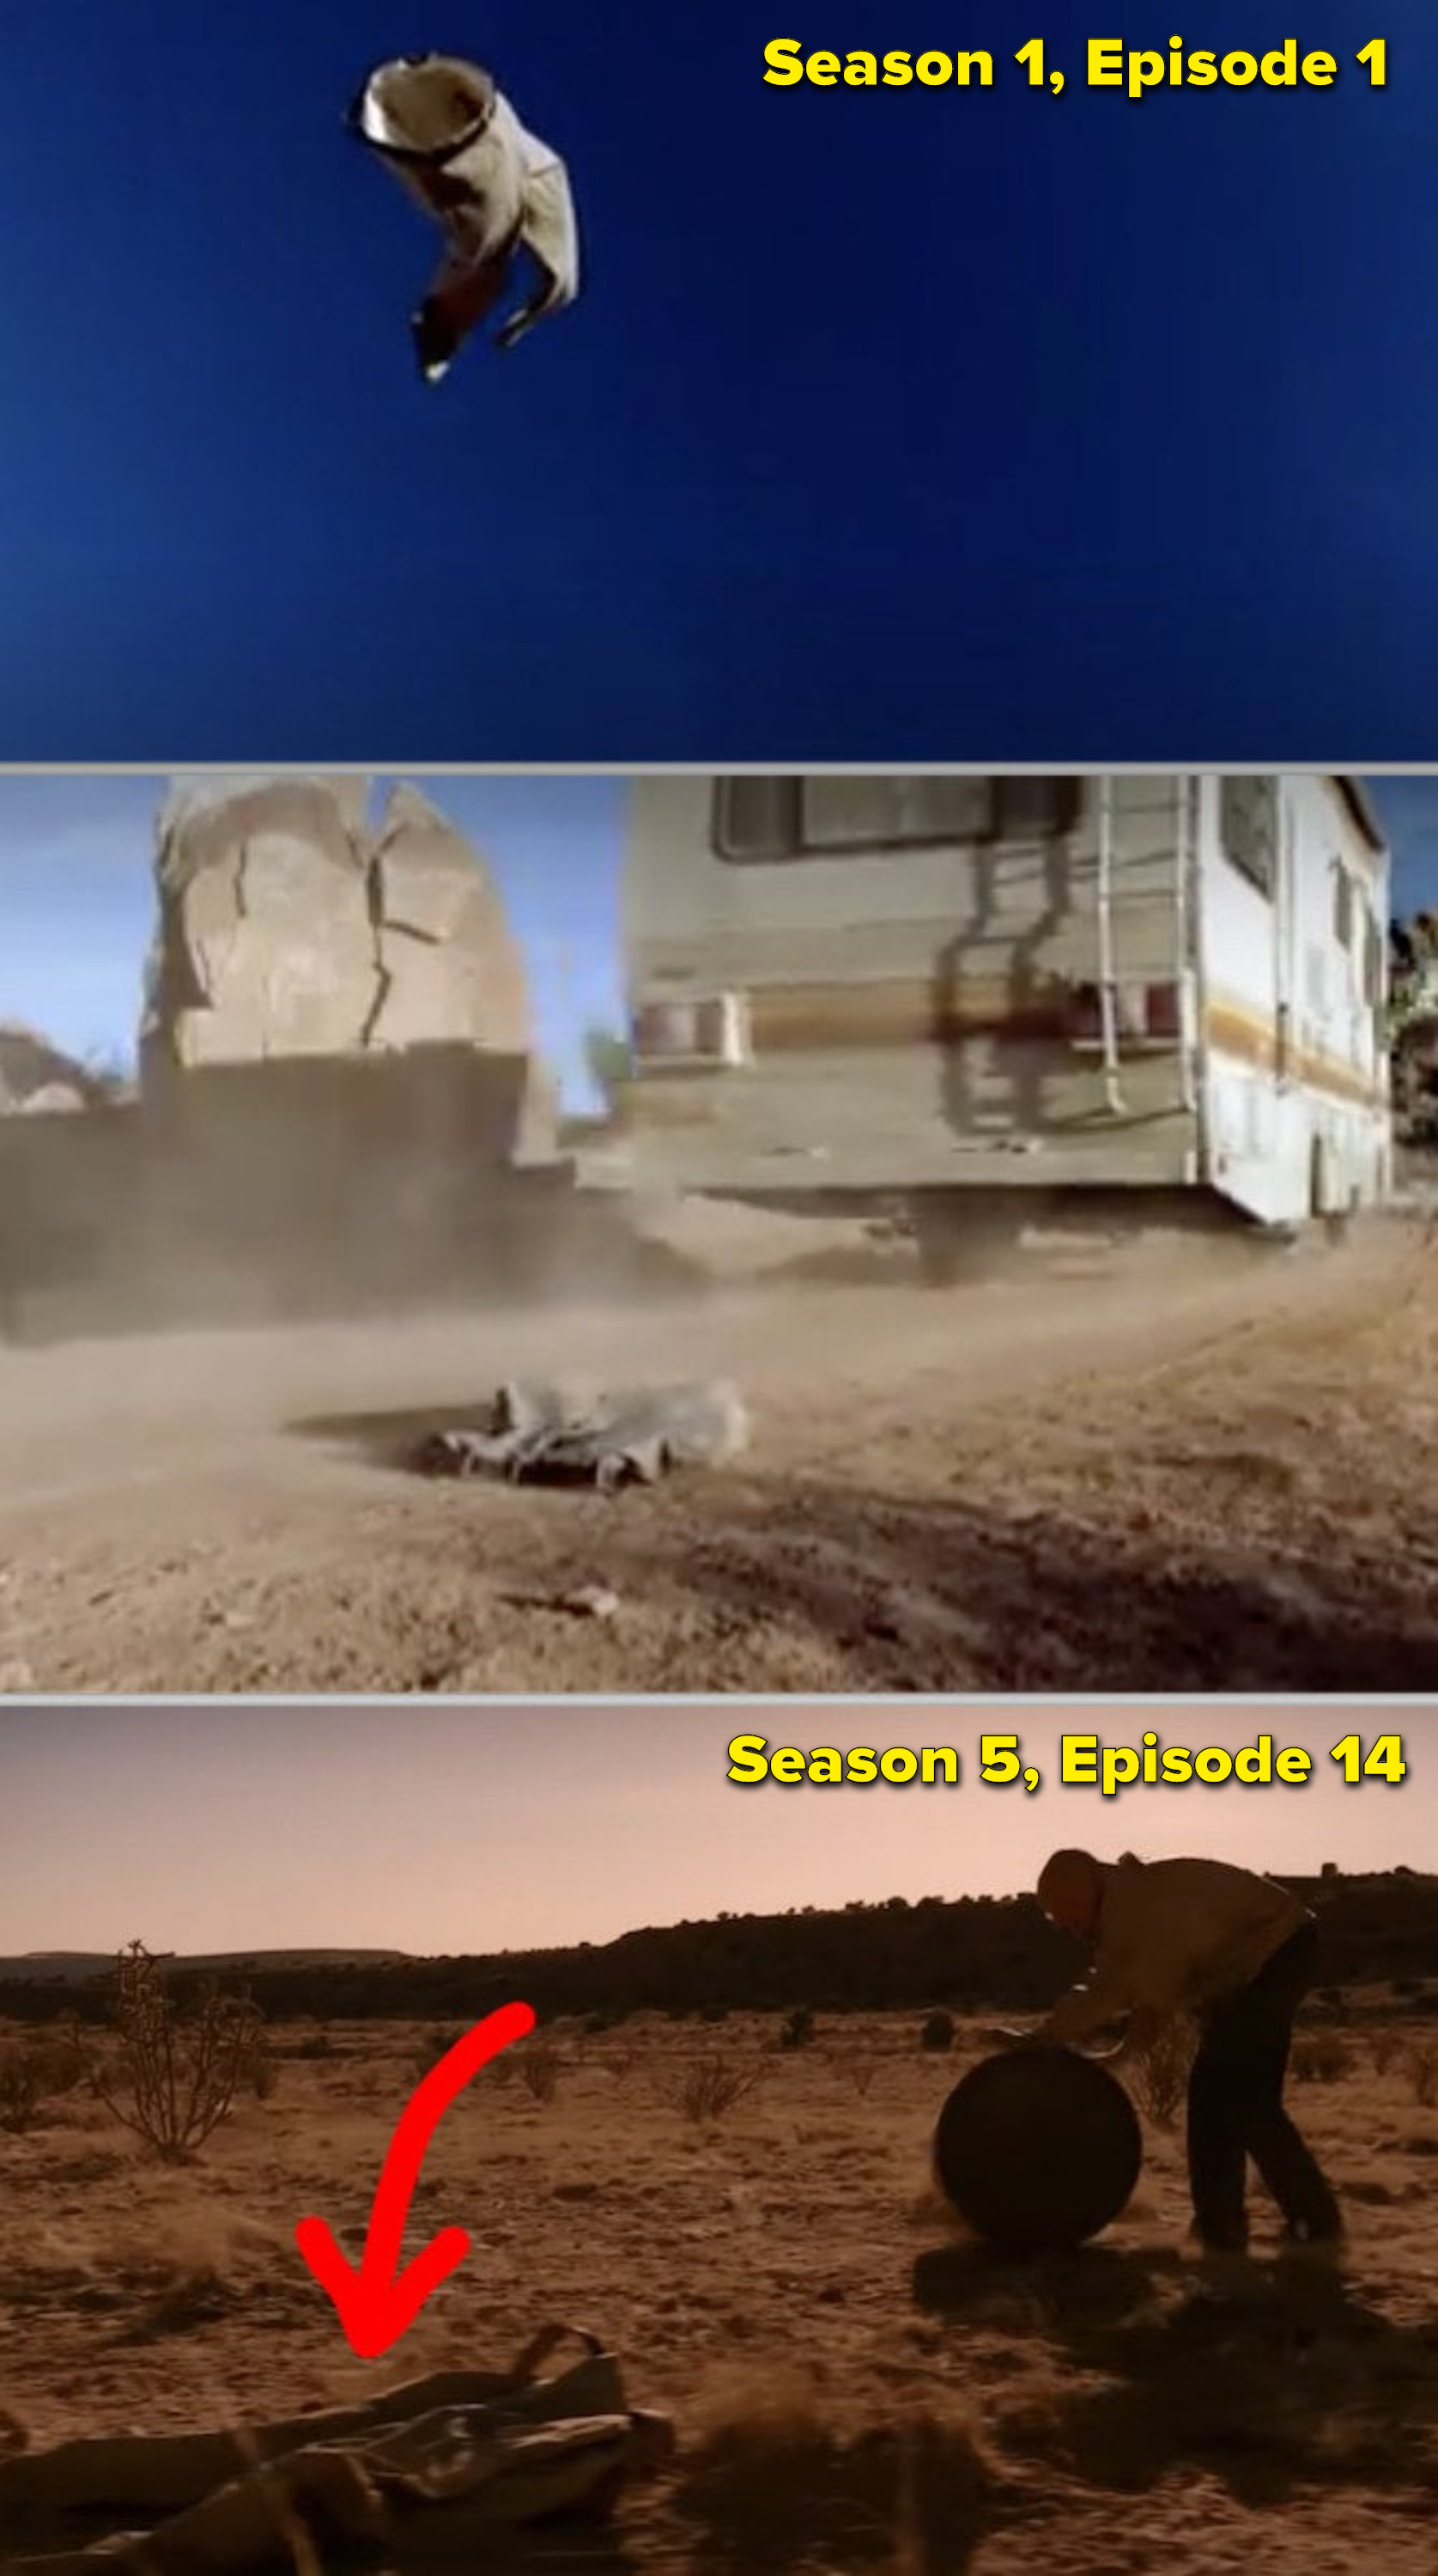 Side-by-sides of Walter White's pants flying through the air in the pilot episode, vs. him walking by those same pants in the desert five years later